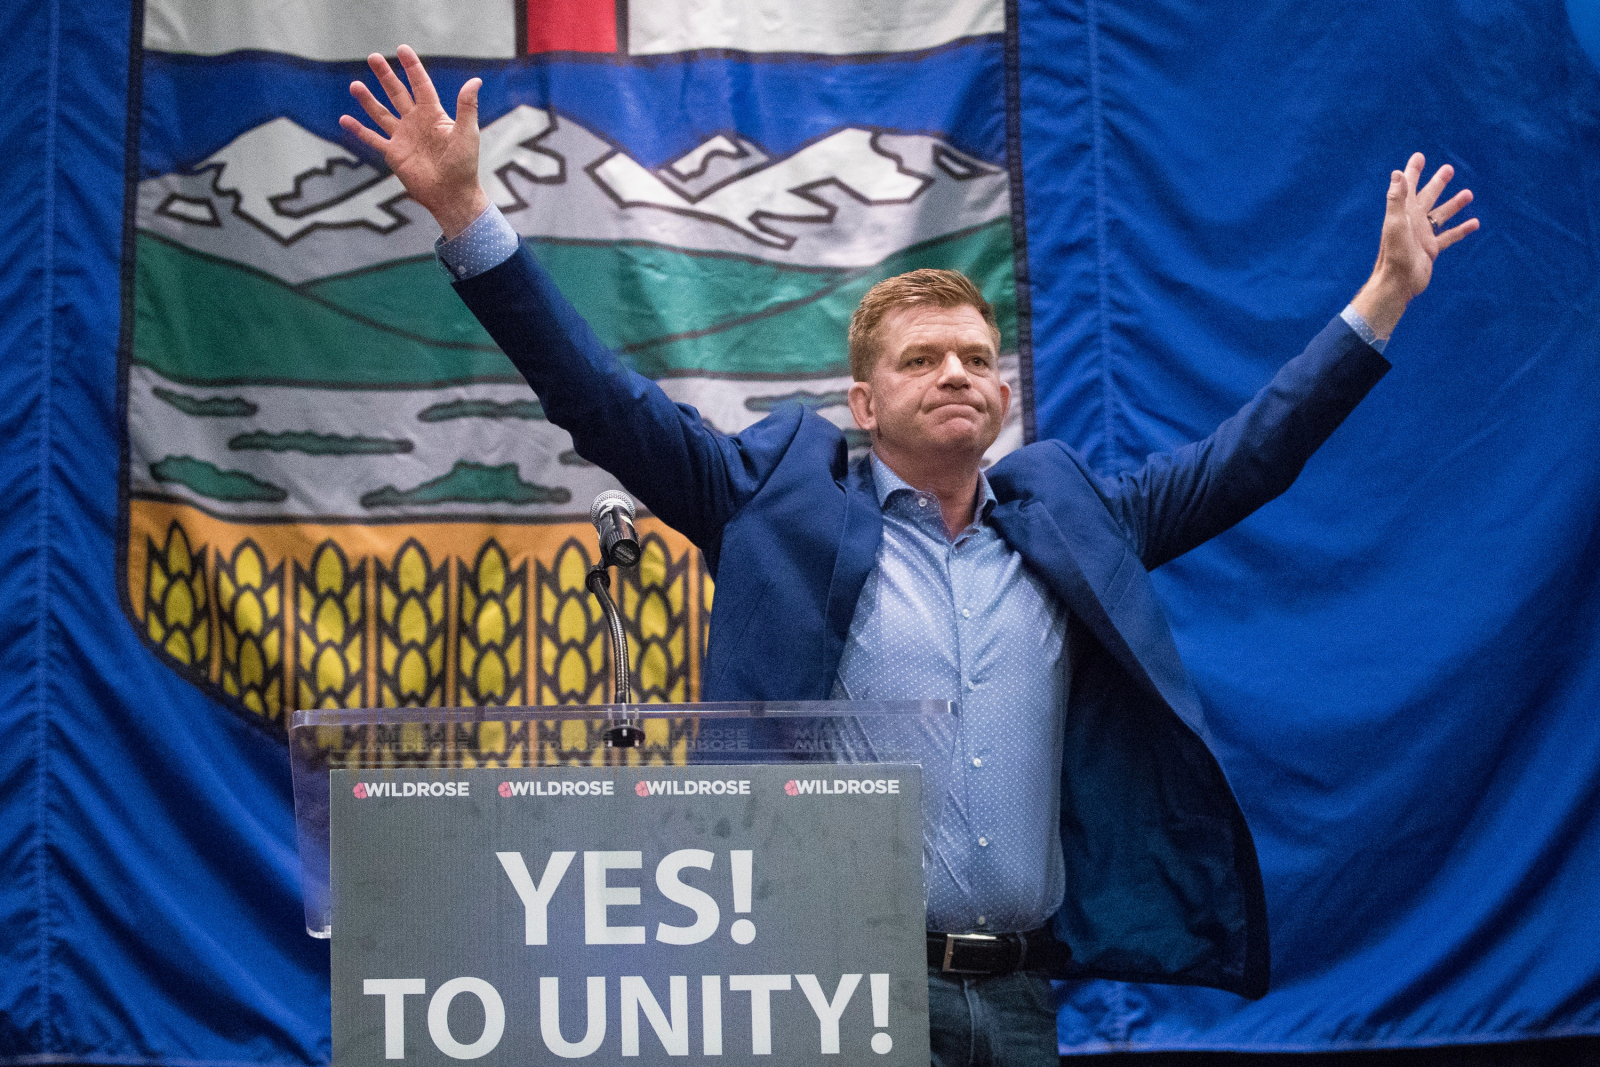 Wildrose leader Brian Jean celebrates the uniting of Alberta's right-wing parties on Saturday, July 22, 2017. Photo provided by the Wildrose Party